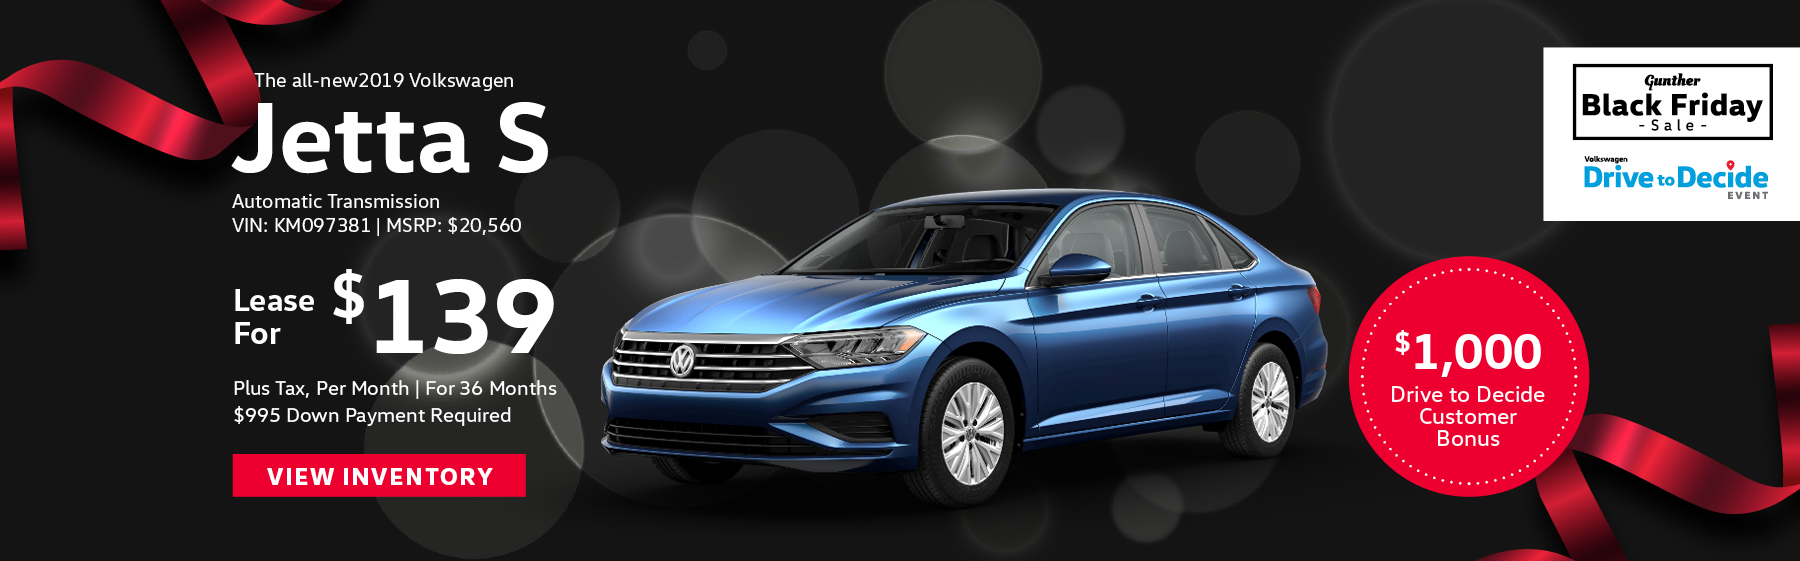 Lease the all-new 2019 Volkswagen Jetta S, for $139 per month, plus tax for 36 months. Click here to view inventory.